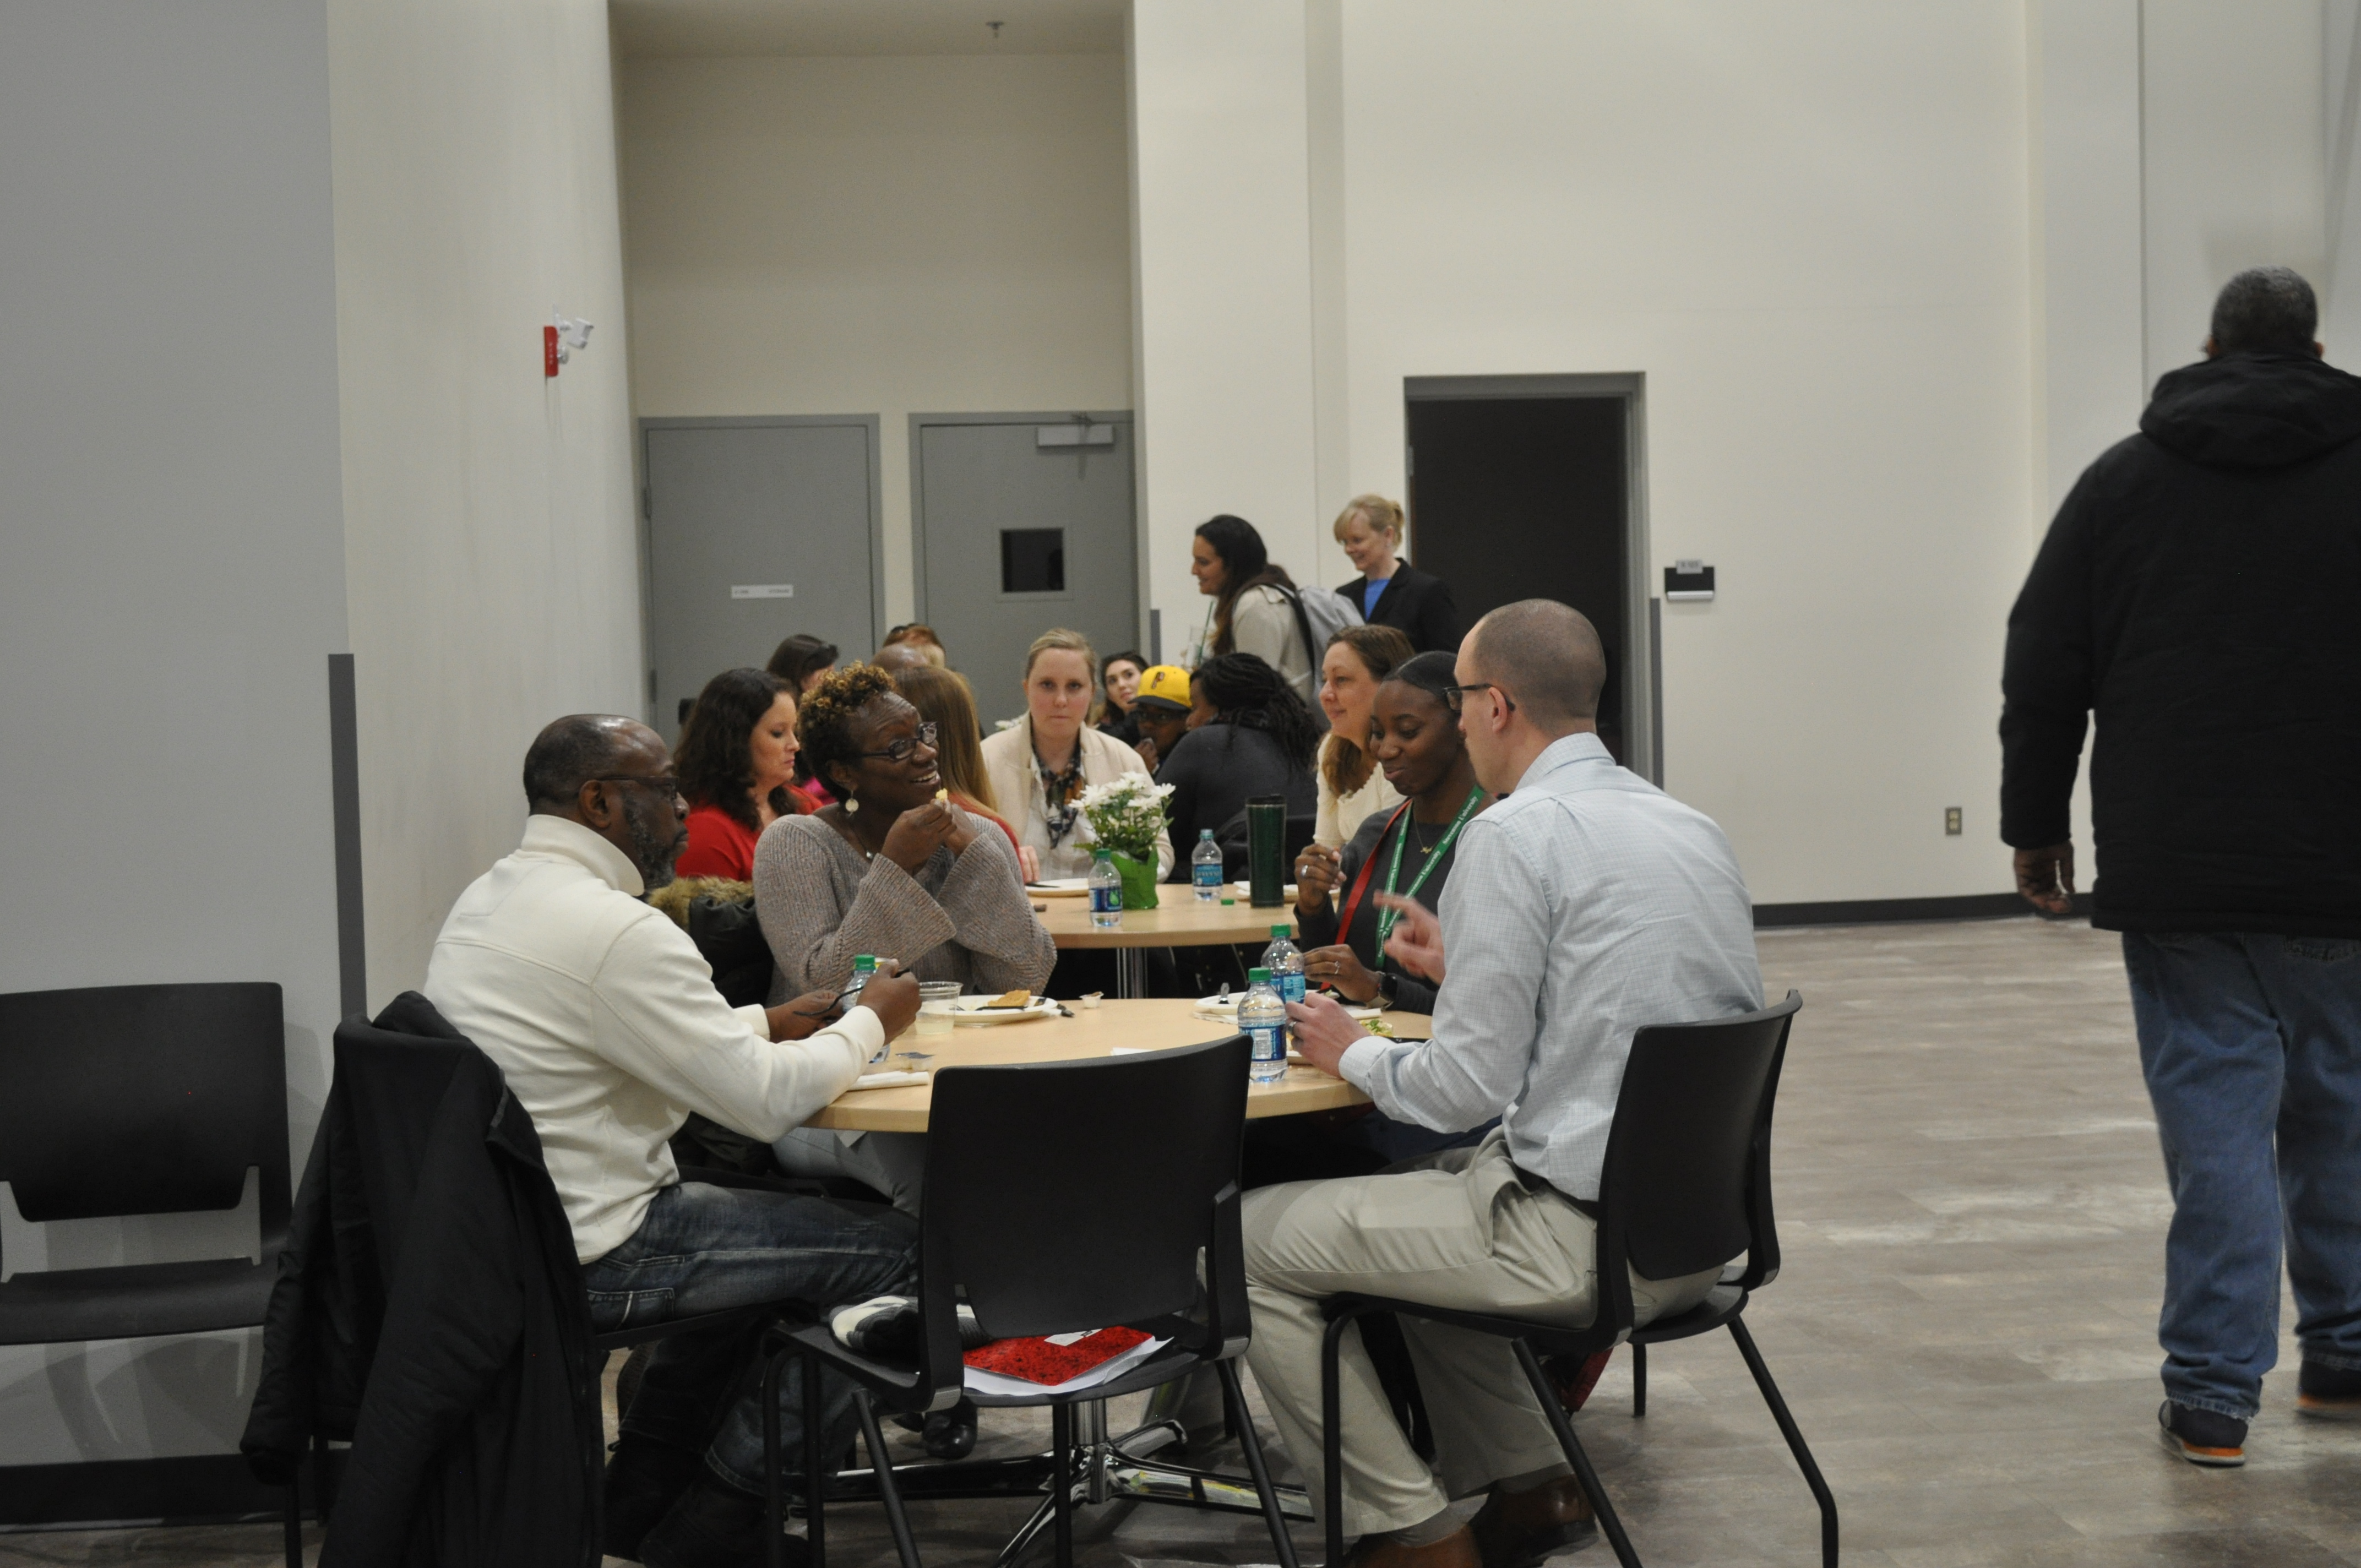 Chemistry faculty mingle with prospective students during lunch